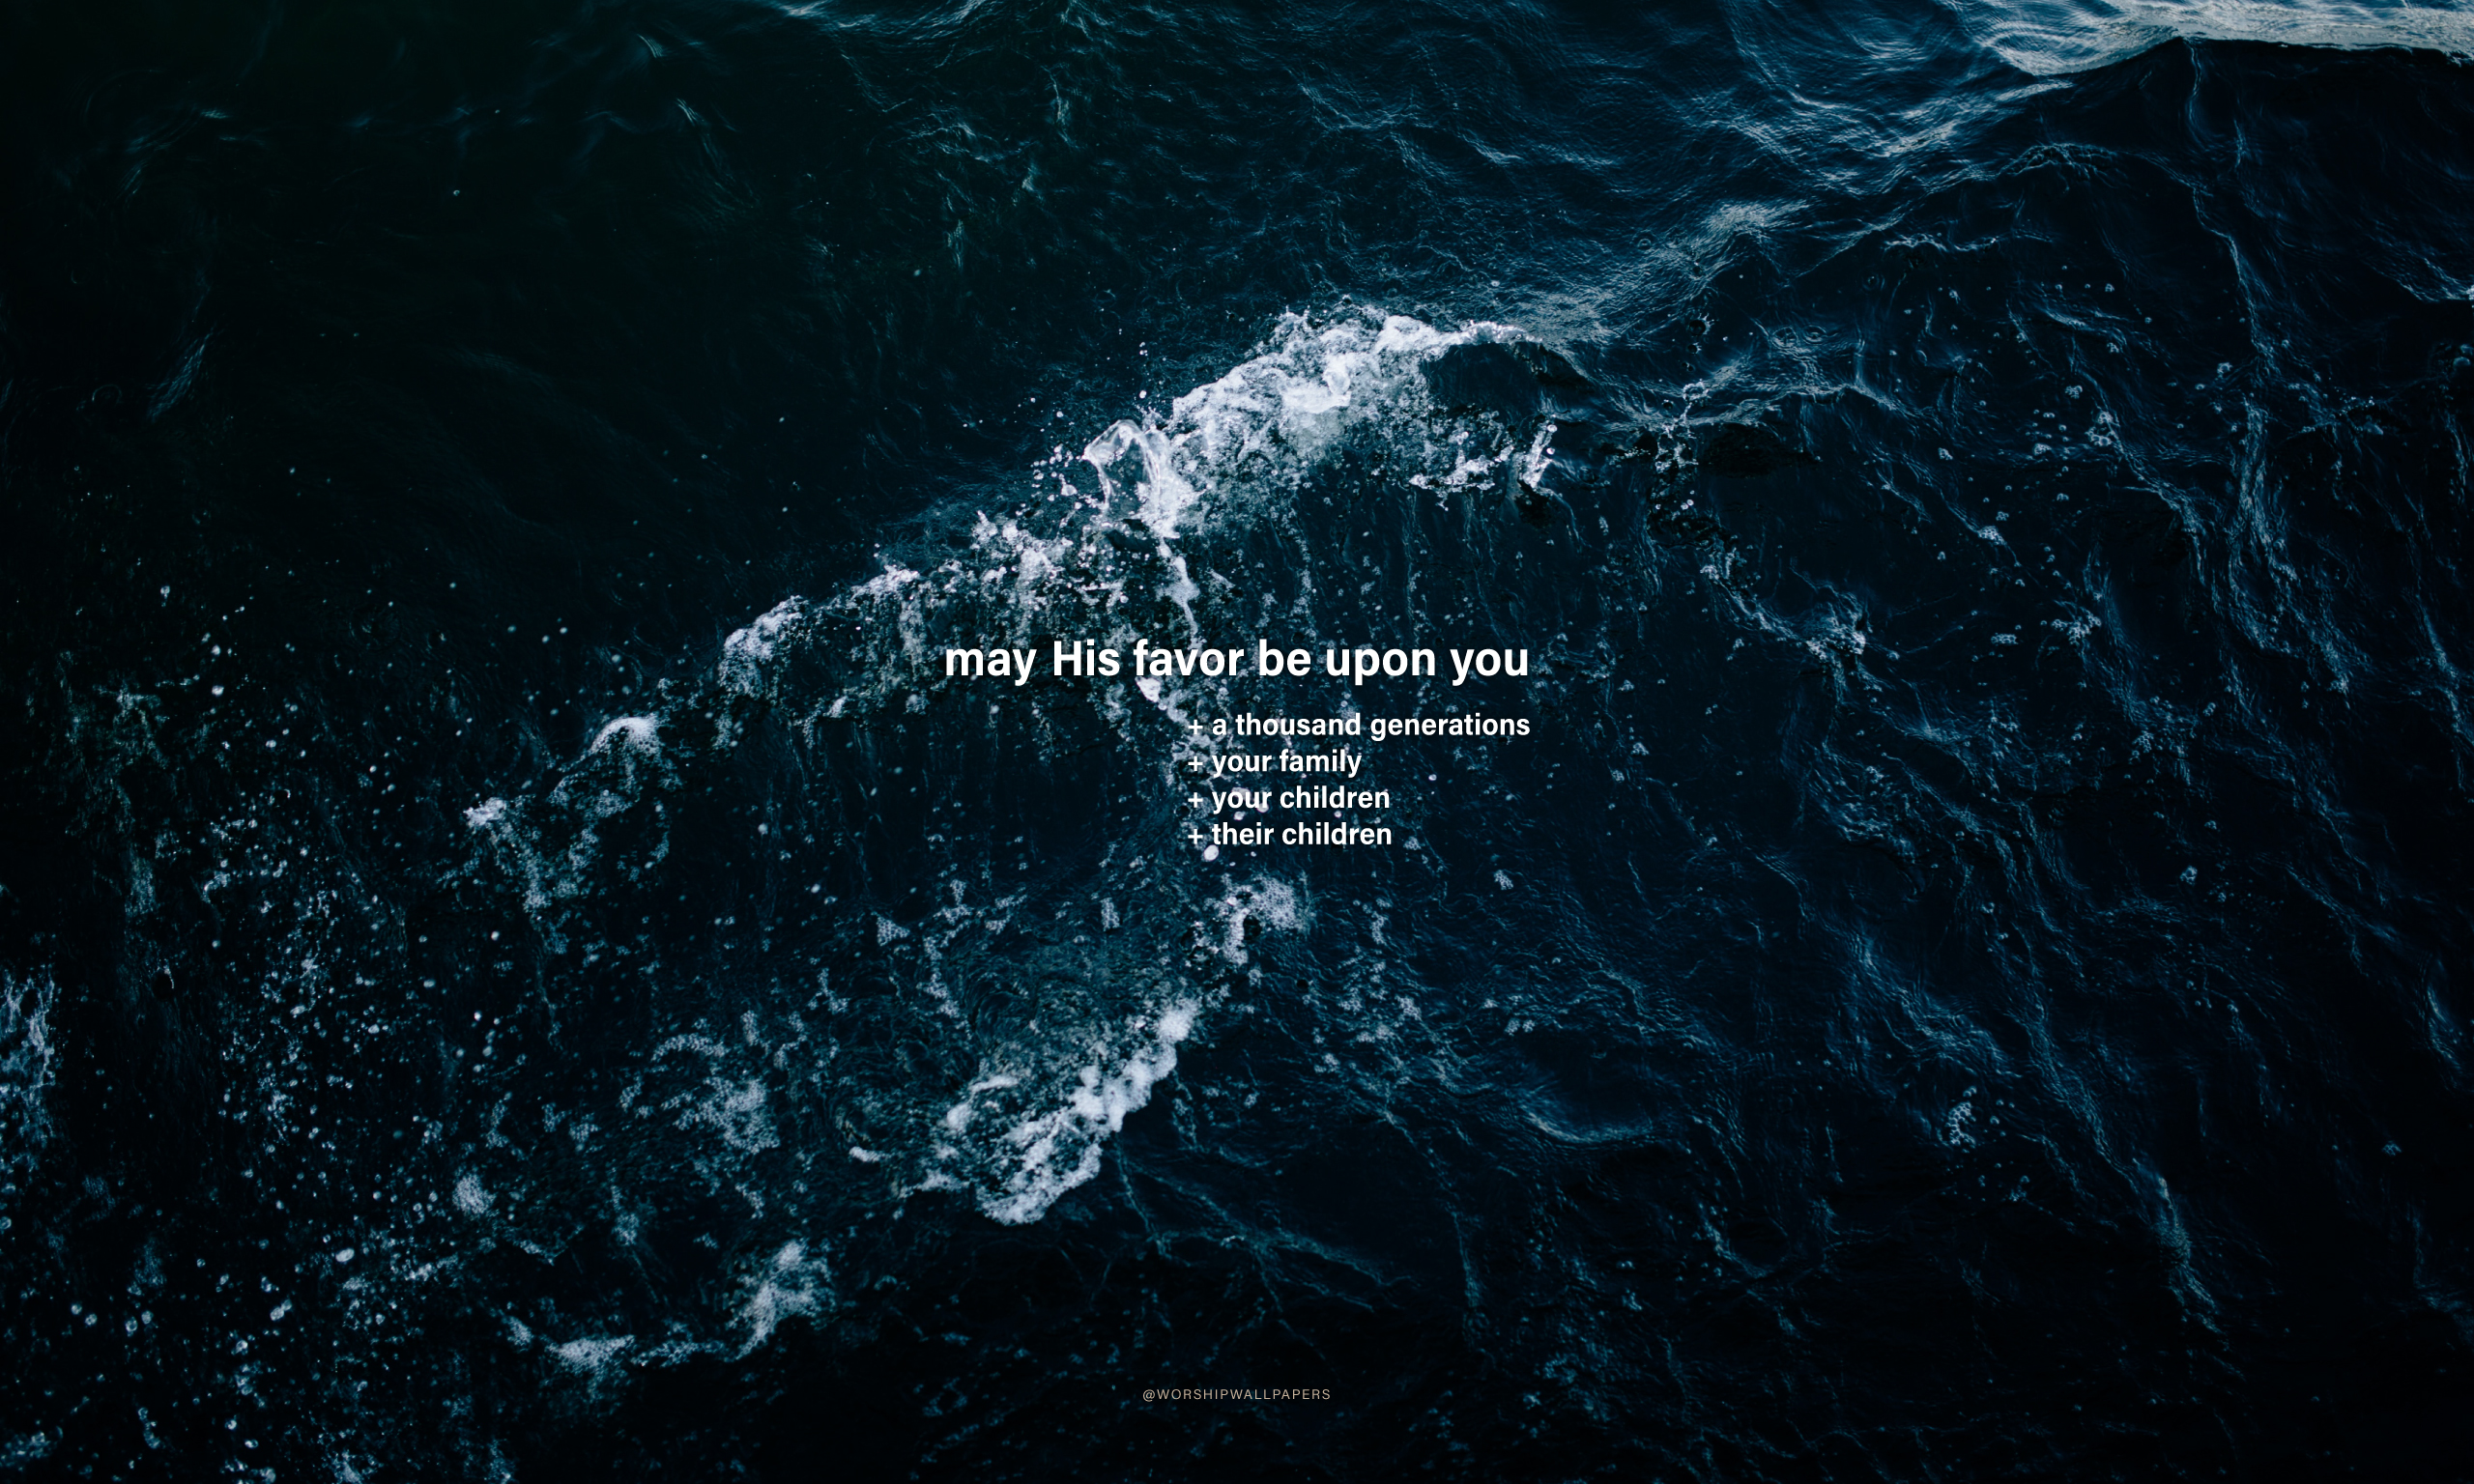 Worship Wallpapers Free Hd Worship Lyric Wallpapers For Your Phone And Laptop